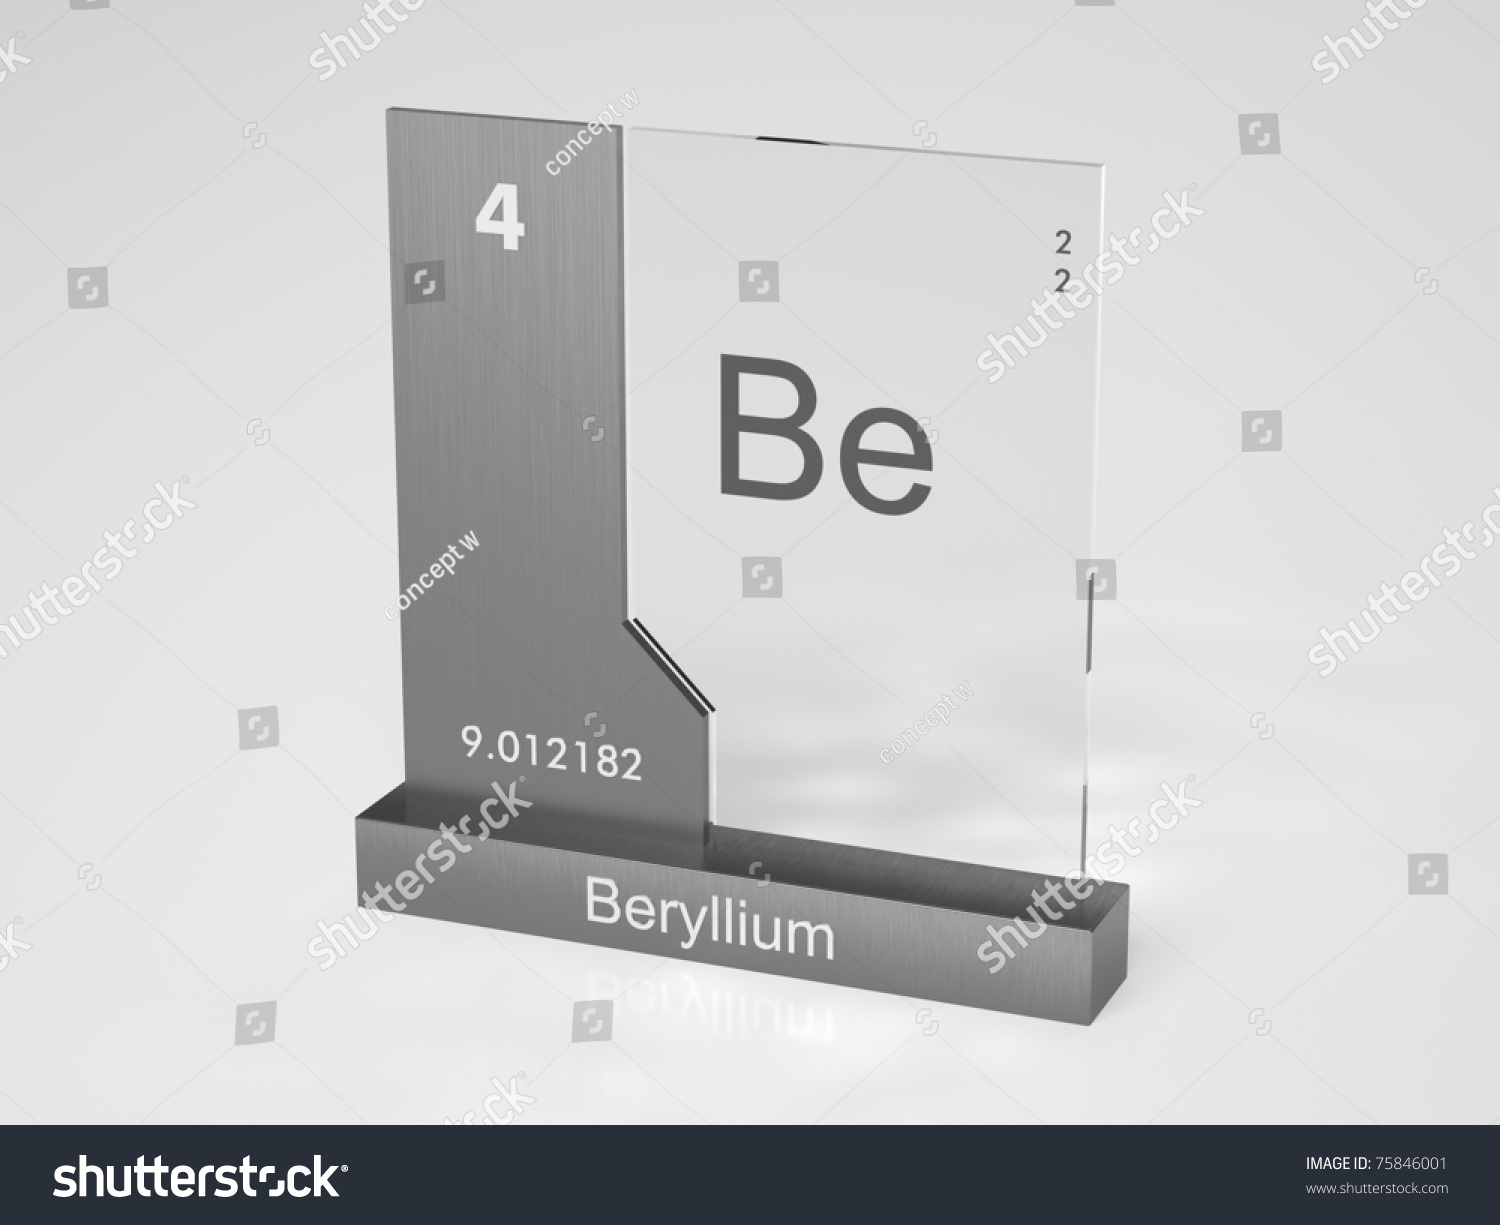 Beryllium symbol be chemical element periodic stock illustration beryllium symbol be chemical element of the periodic table biocorpaavc Images